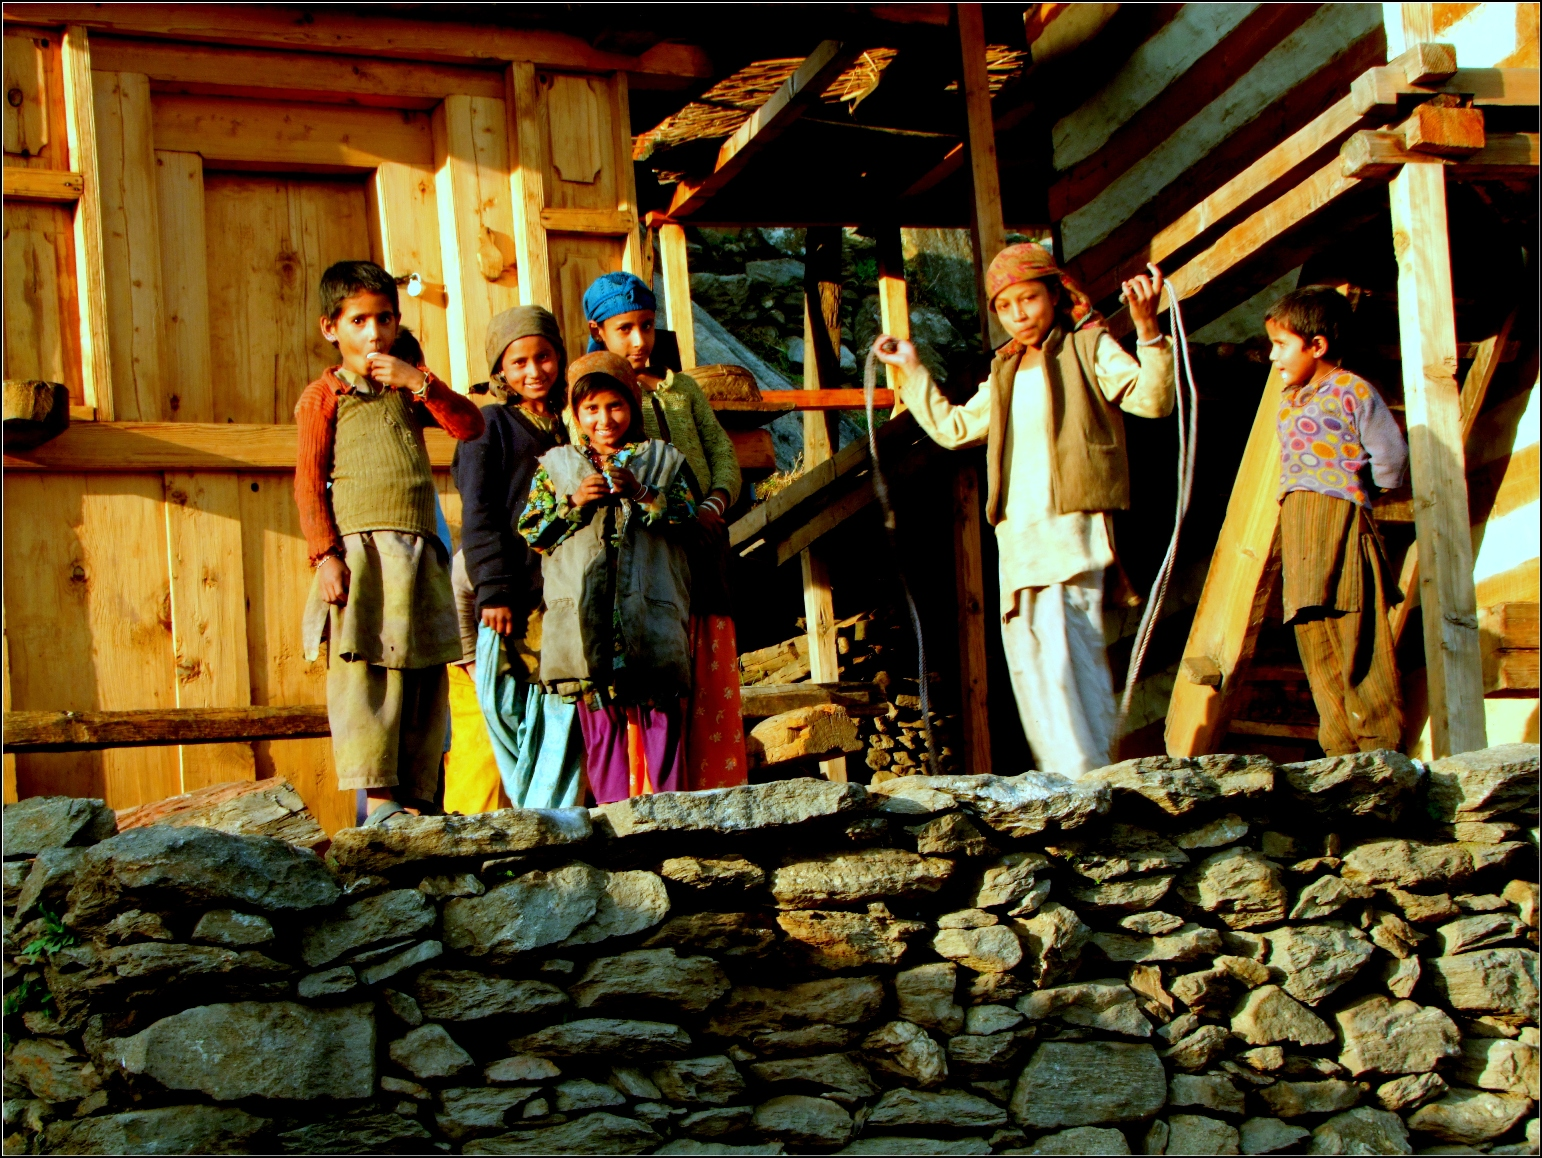 In Photos: The Resplendent Colours Of Spring In A Himalayan Village